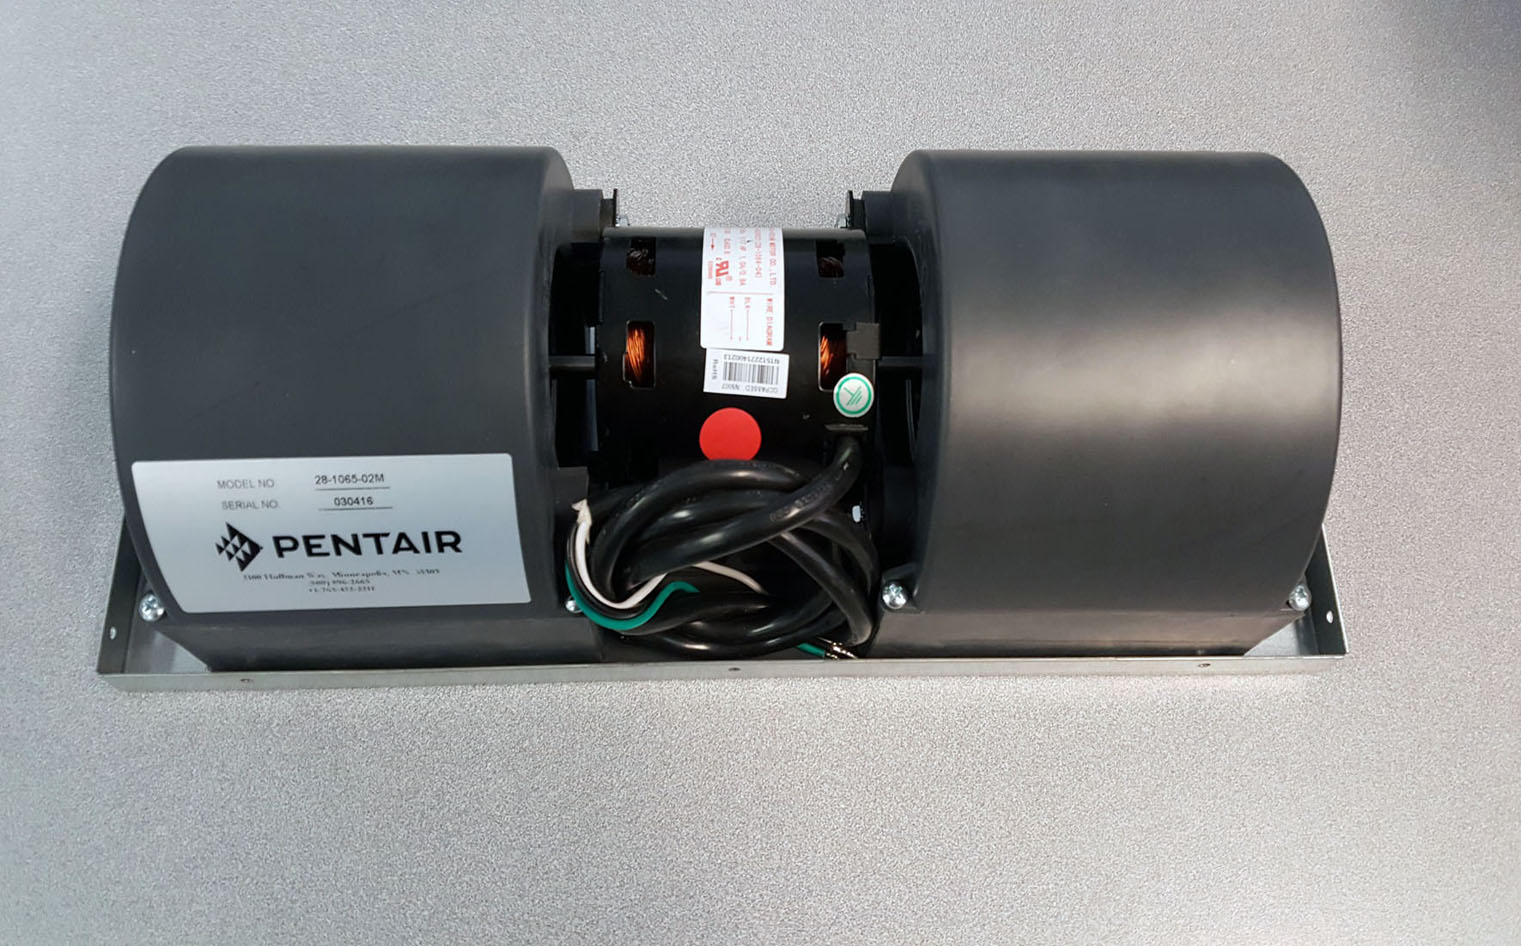 Pentair, Hoffman, McLean 28106502M Blower Assembly, 230 Volt